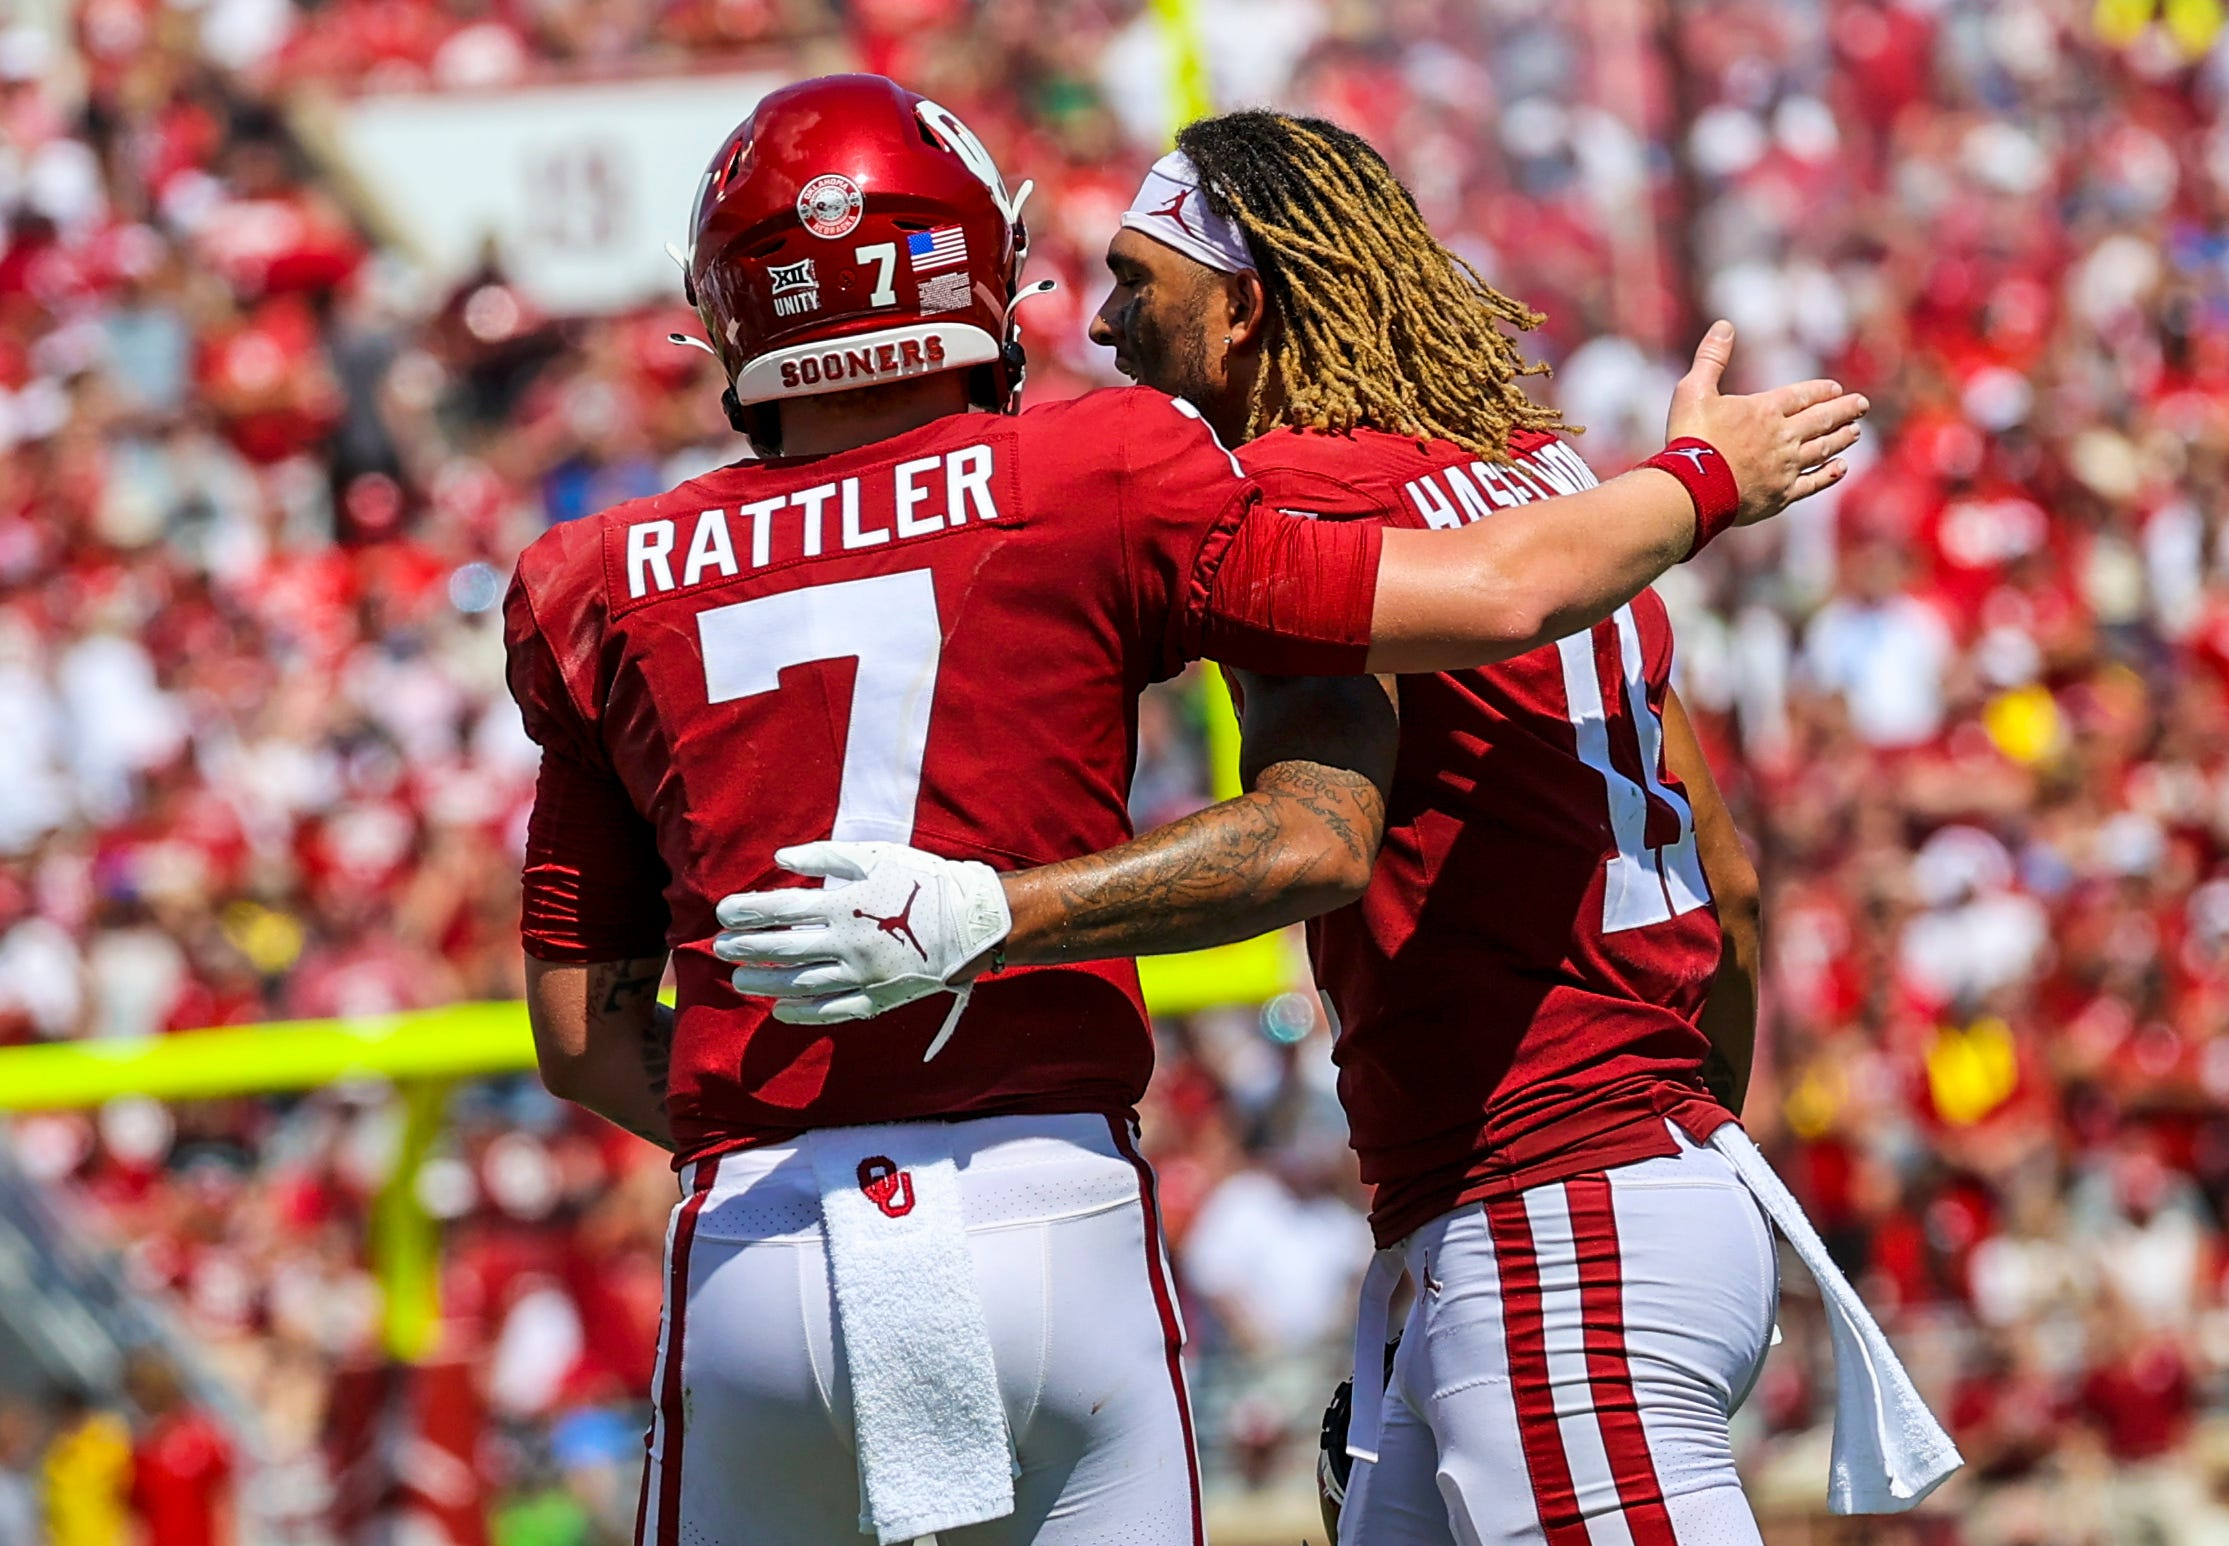 Oklahoma moves to No. 2 in USA TODAY Sports AFCA Coaches Poll after Iowa loss